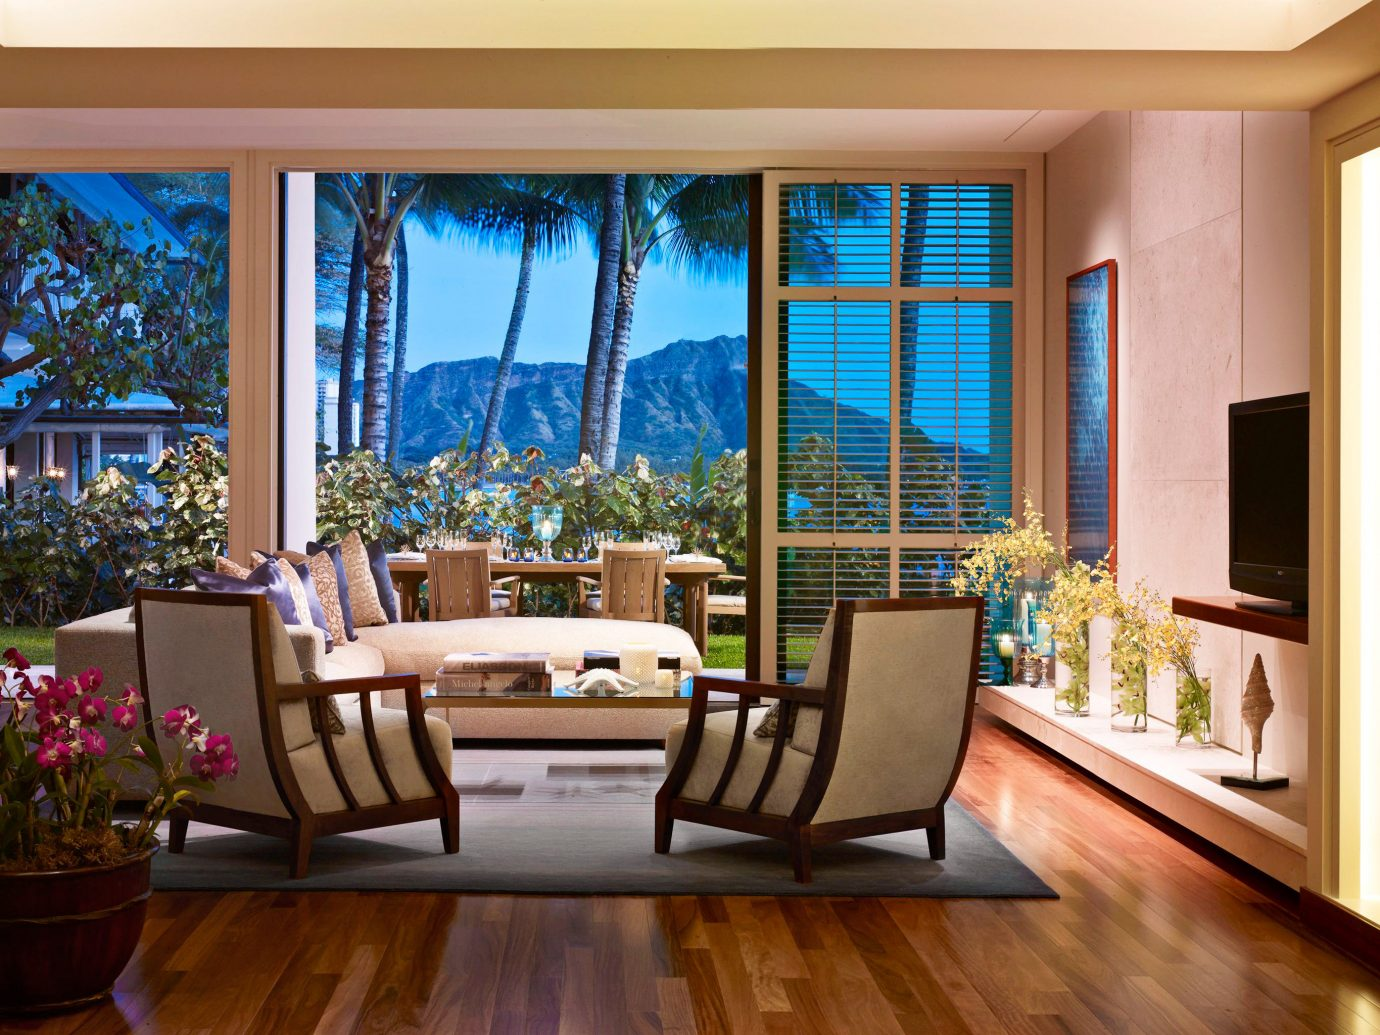 Boutique Hotels Hawaii Honolulu Hotels Living Luxury Patio Resort Scenic views indoor floor window wall room living room property ceiling home estate dining room hardwood furniture interior design real estate condominium Suite wood flooring decorated wood